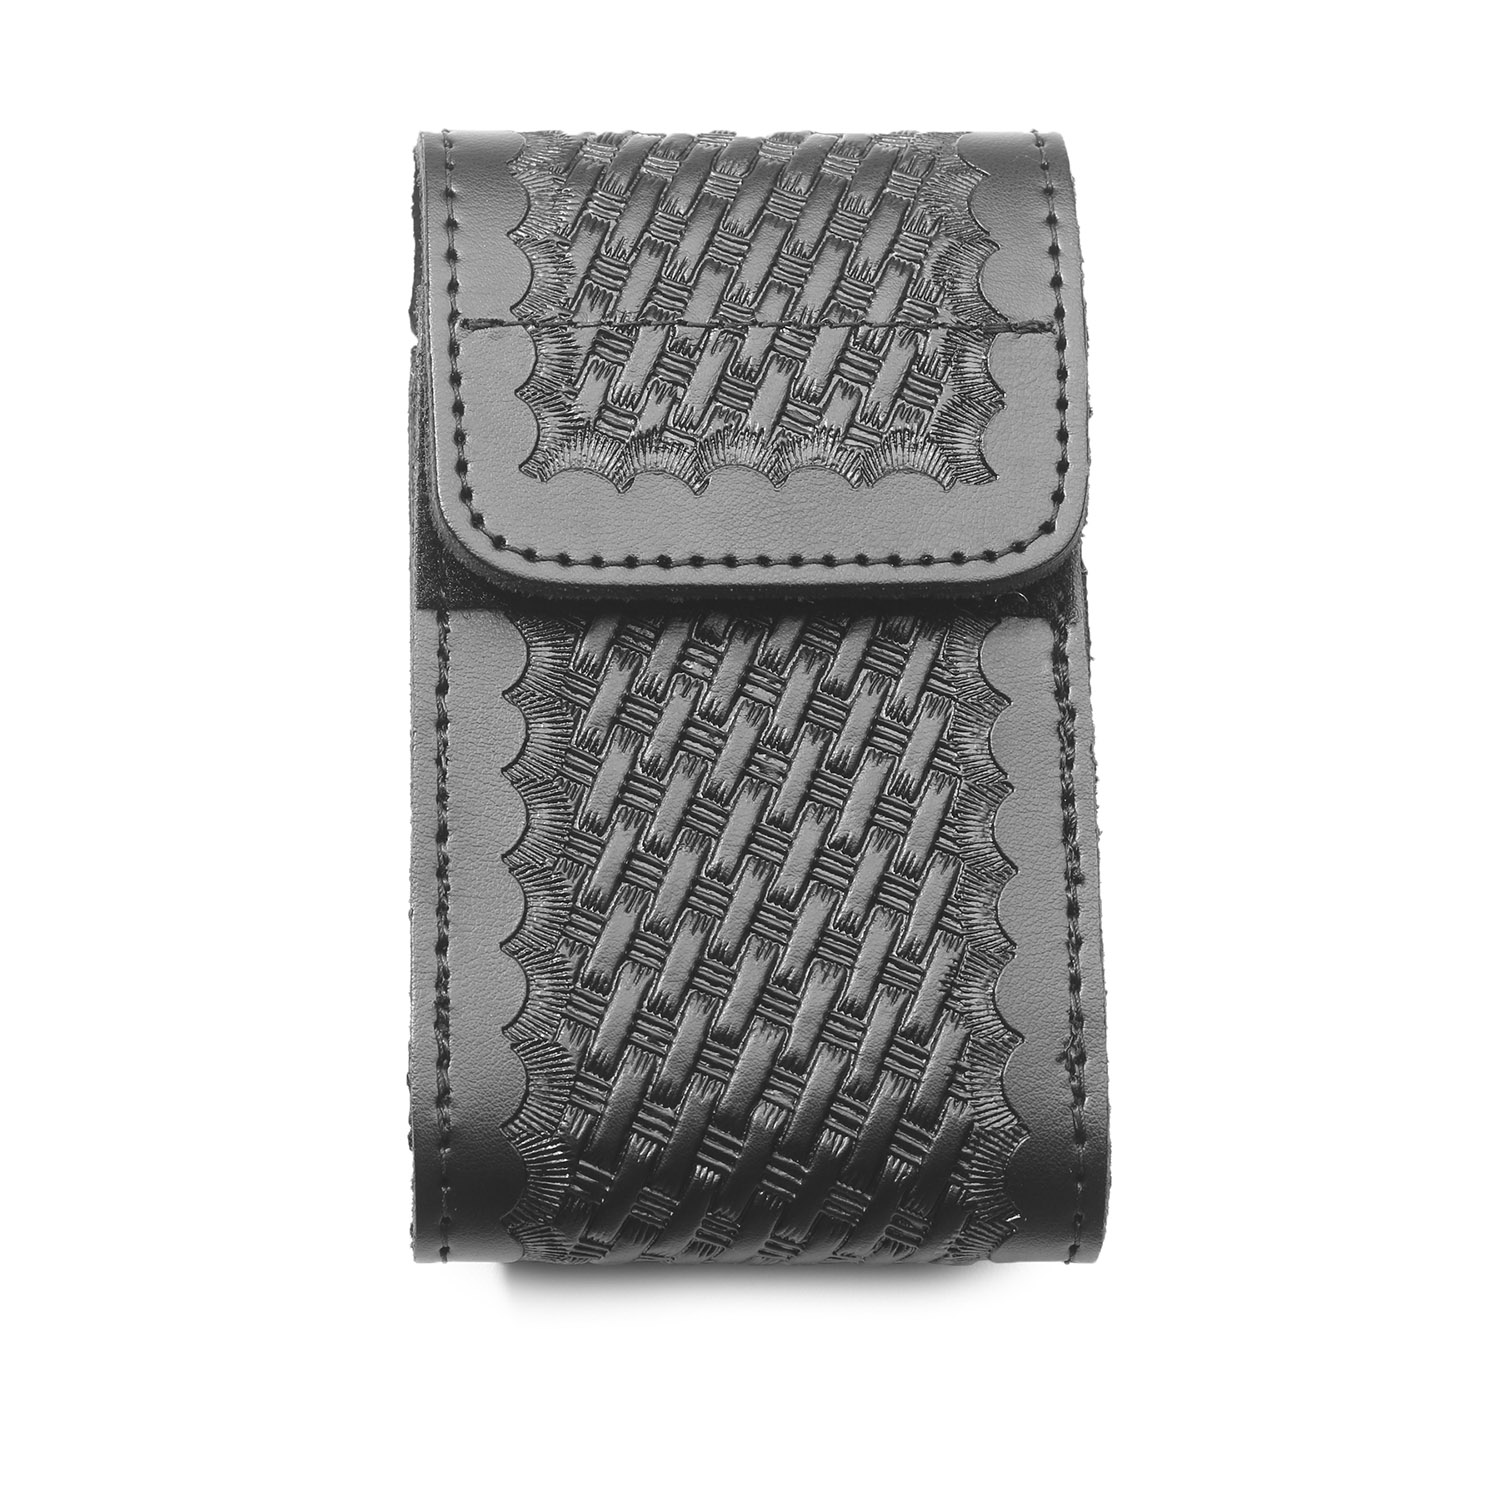 Gould & Goodrich Leather Duty Cell Phone Holder